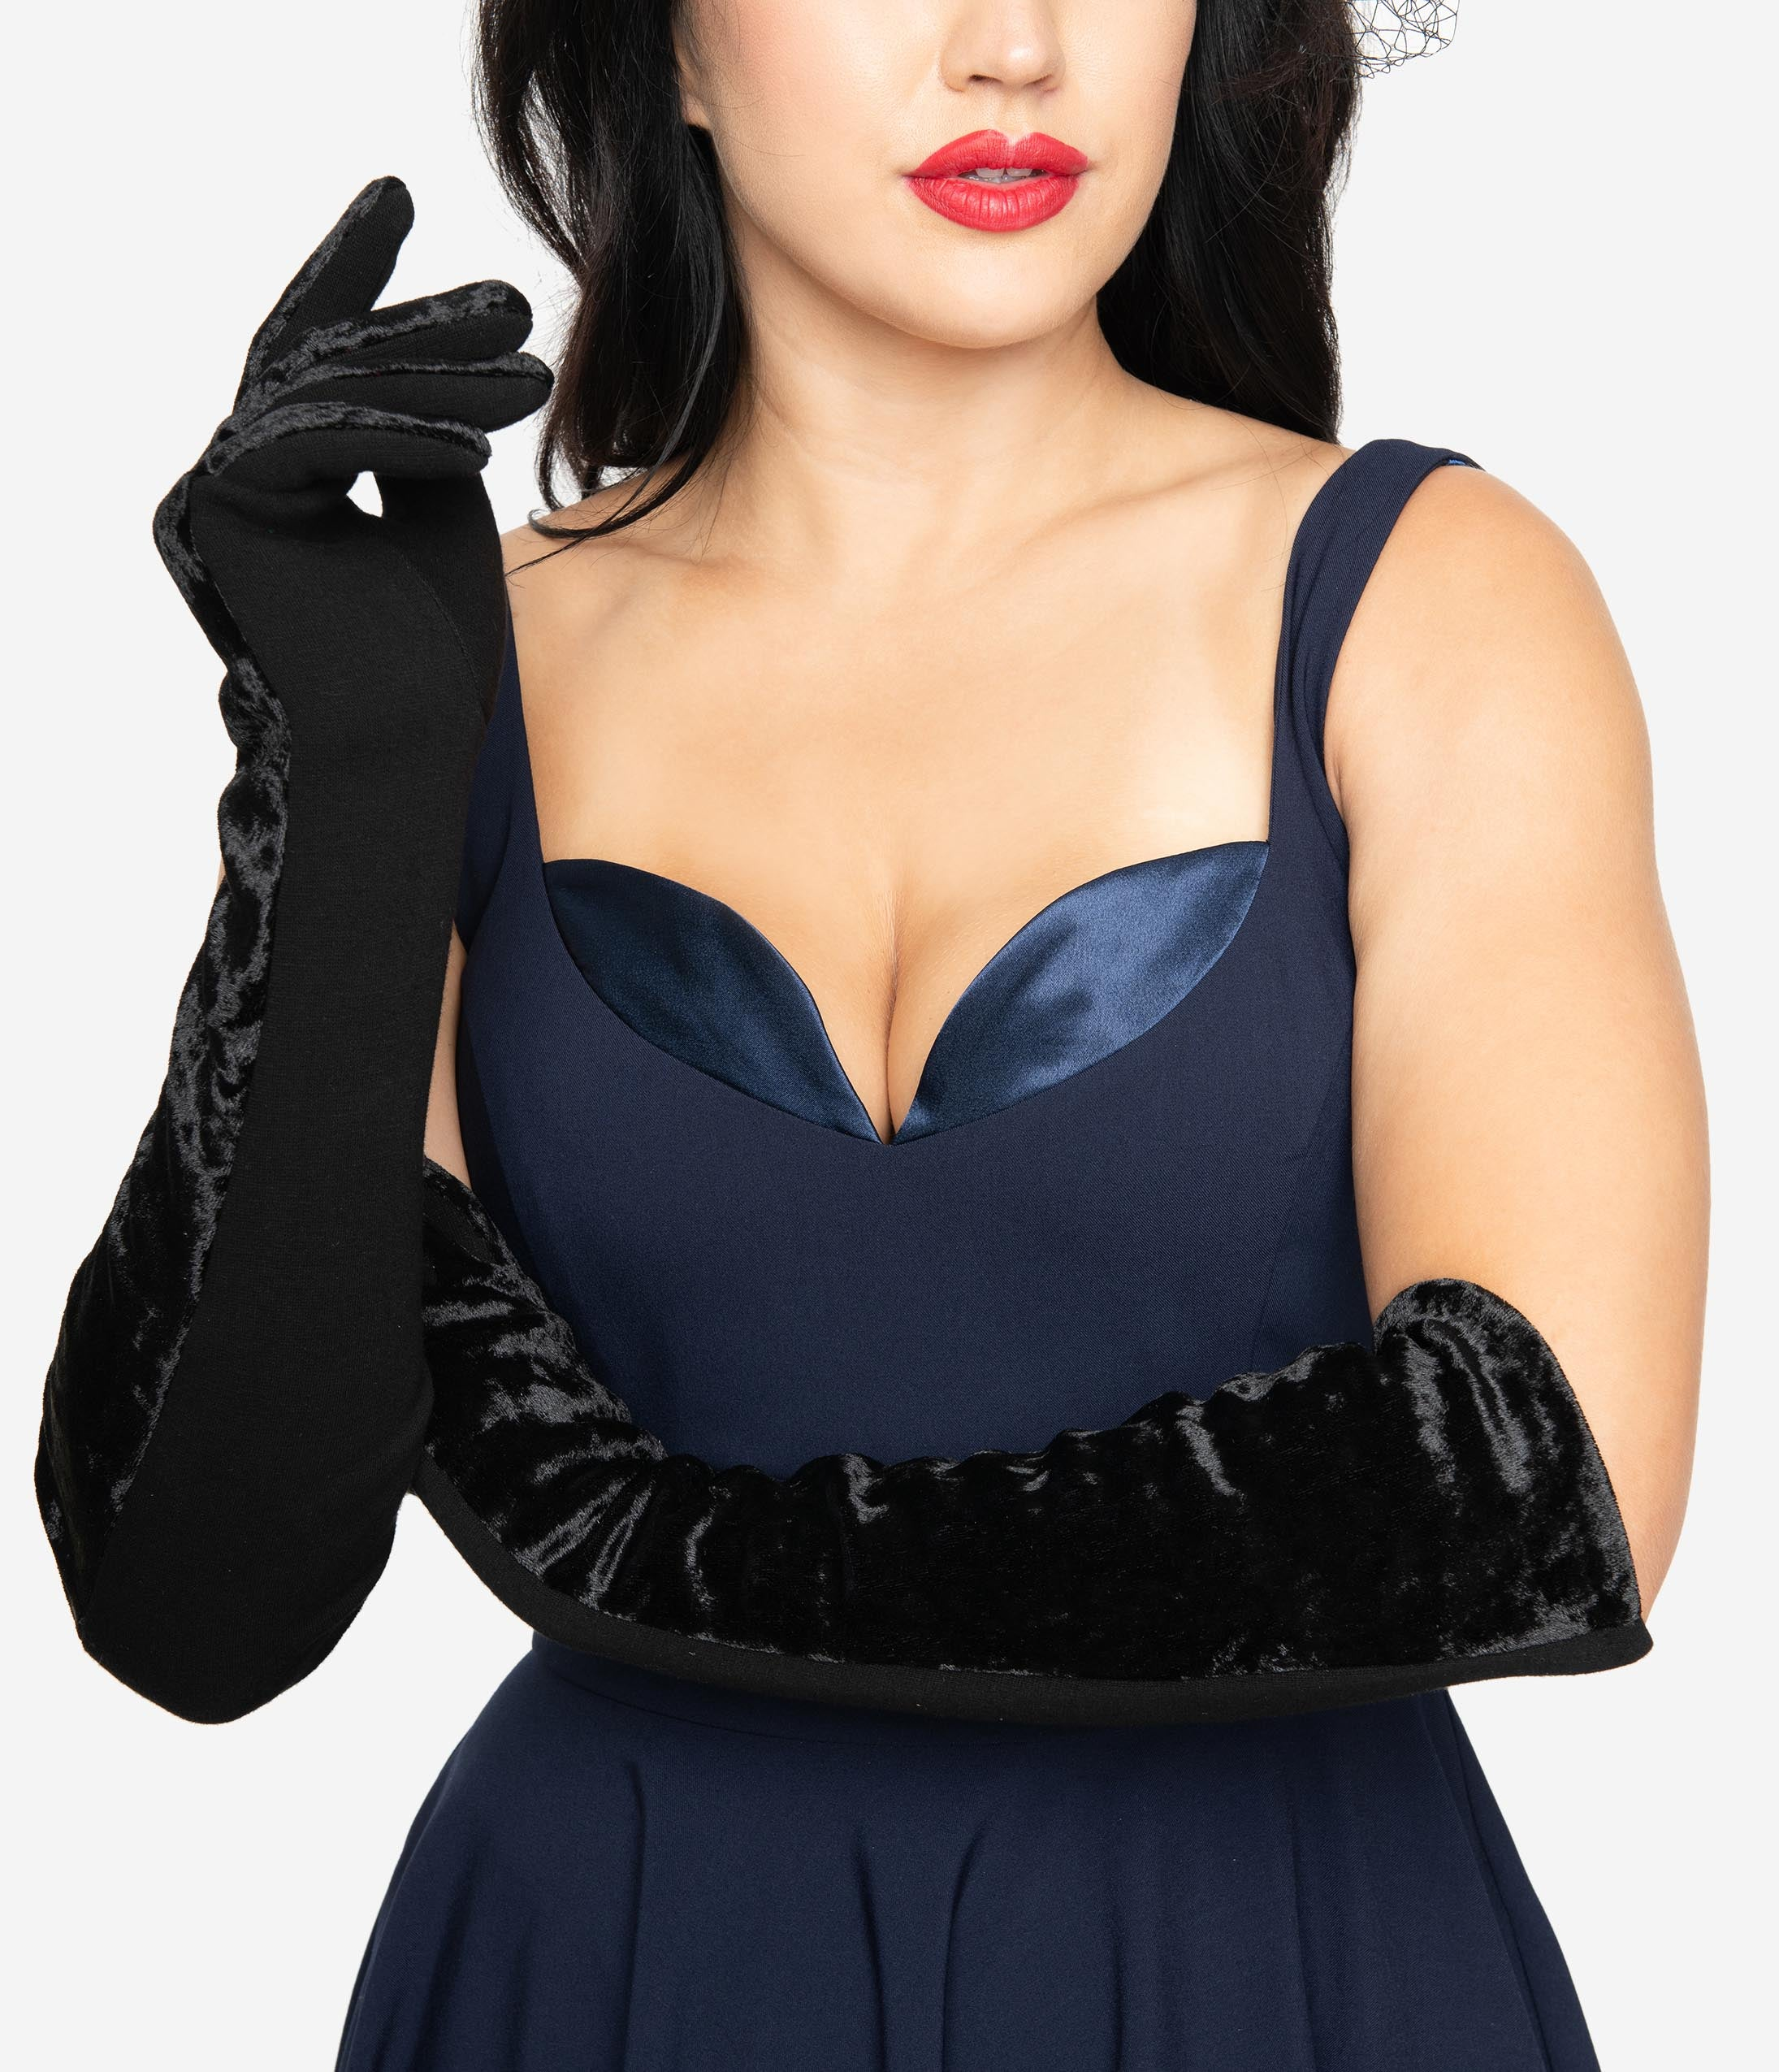 Vintage Style Gloves- Long, Wrist, Evening, Day, Leather, Lace Vintage Style Black Velvet Opera Gloves $24.00 AT vintagedancer.com